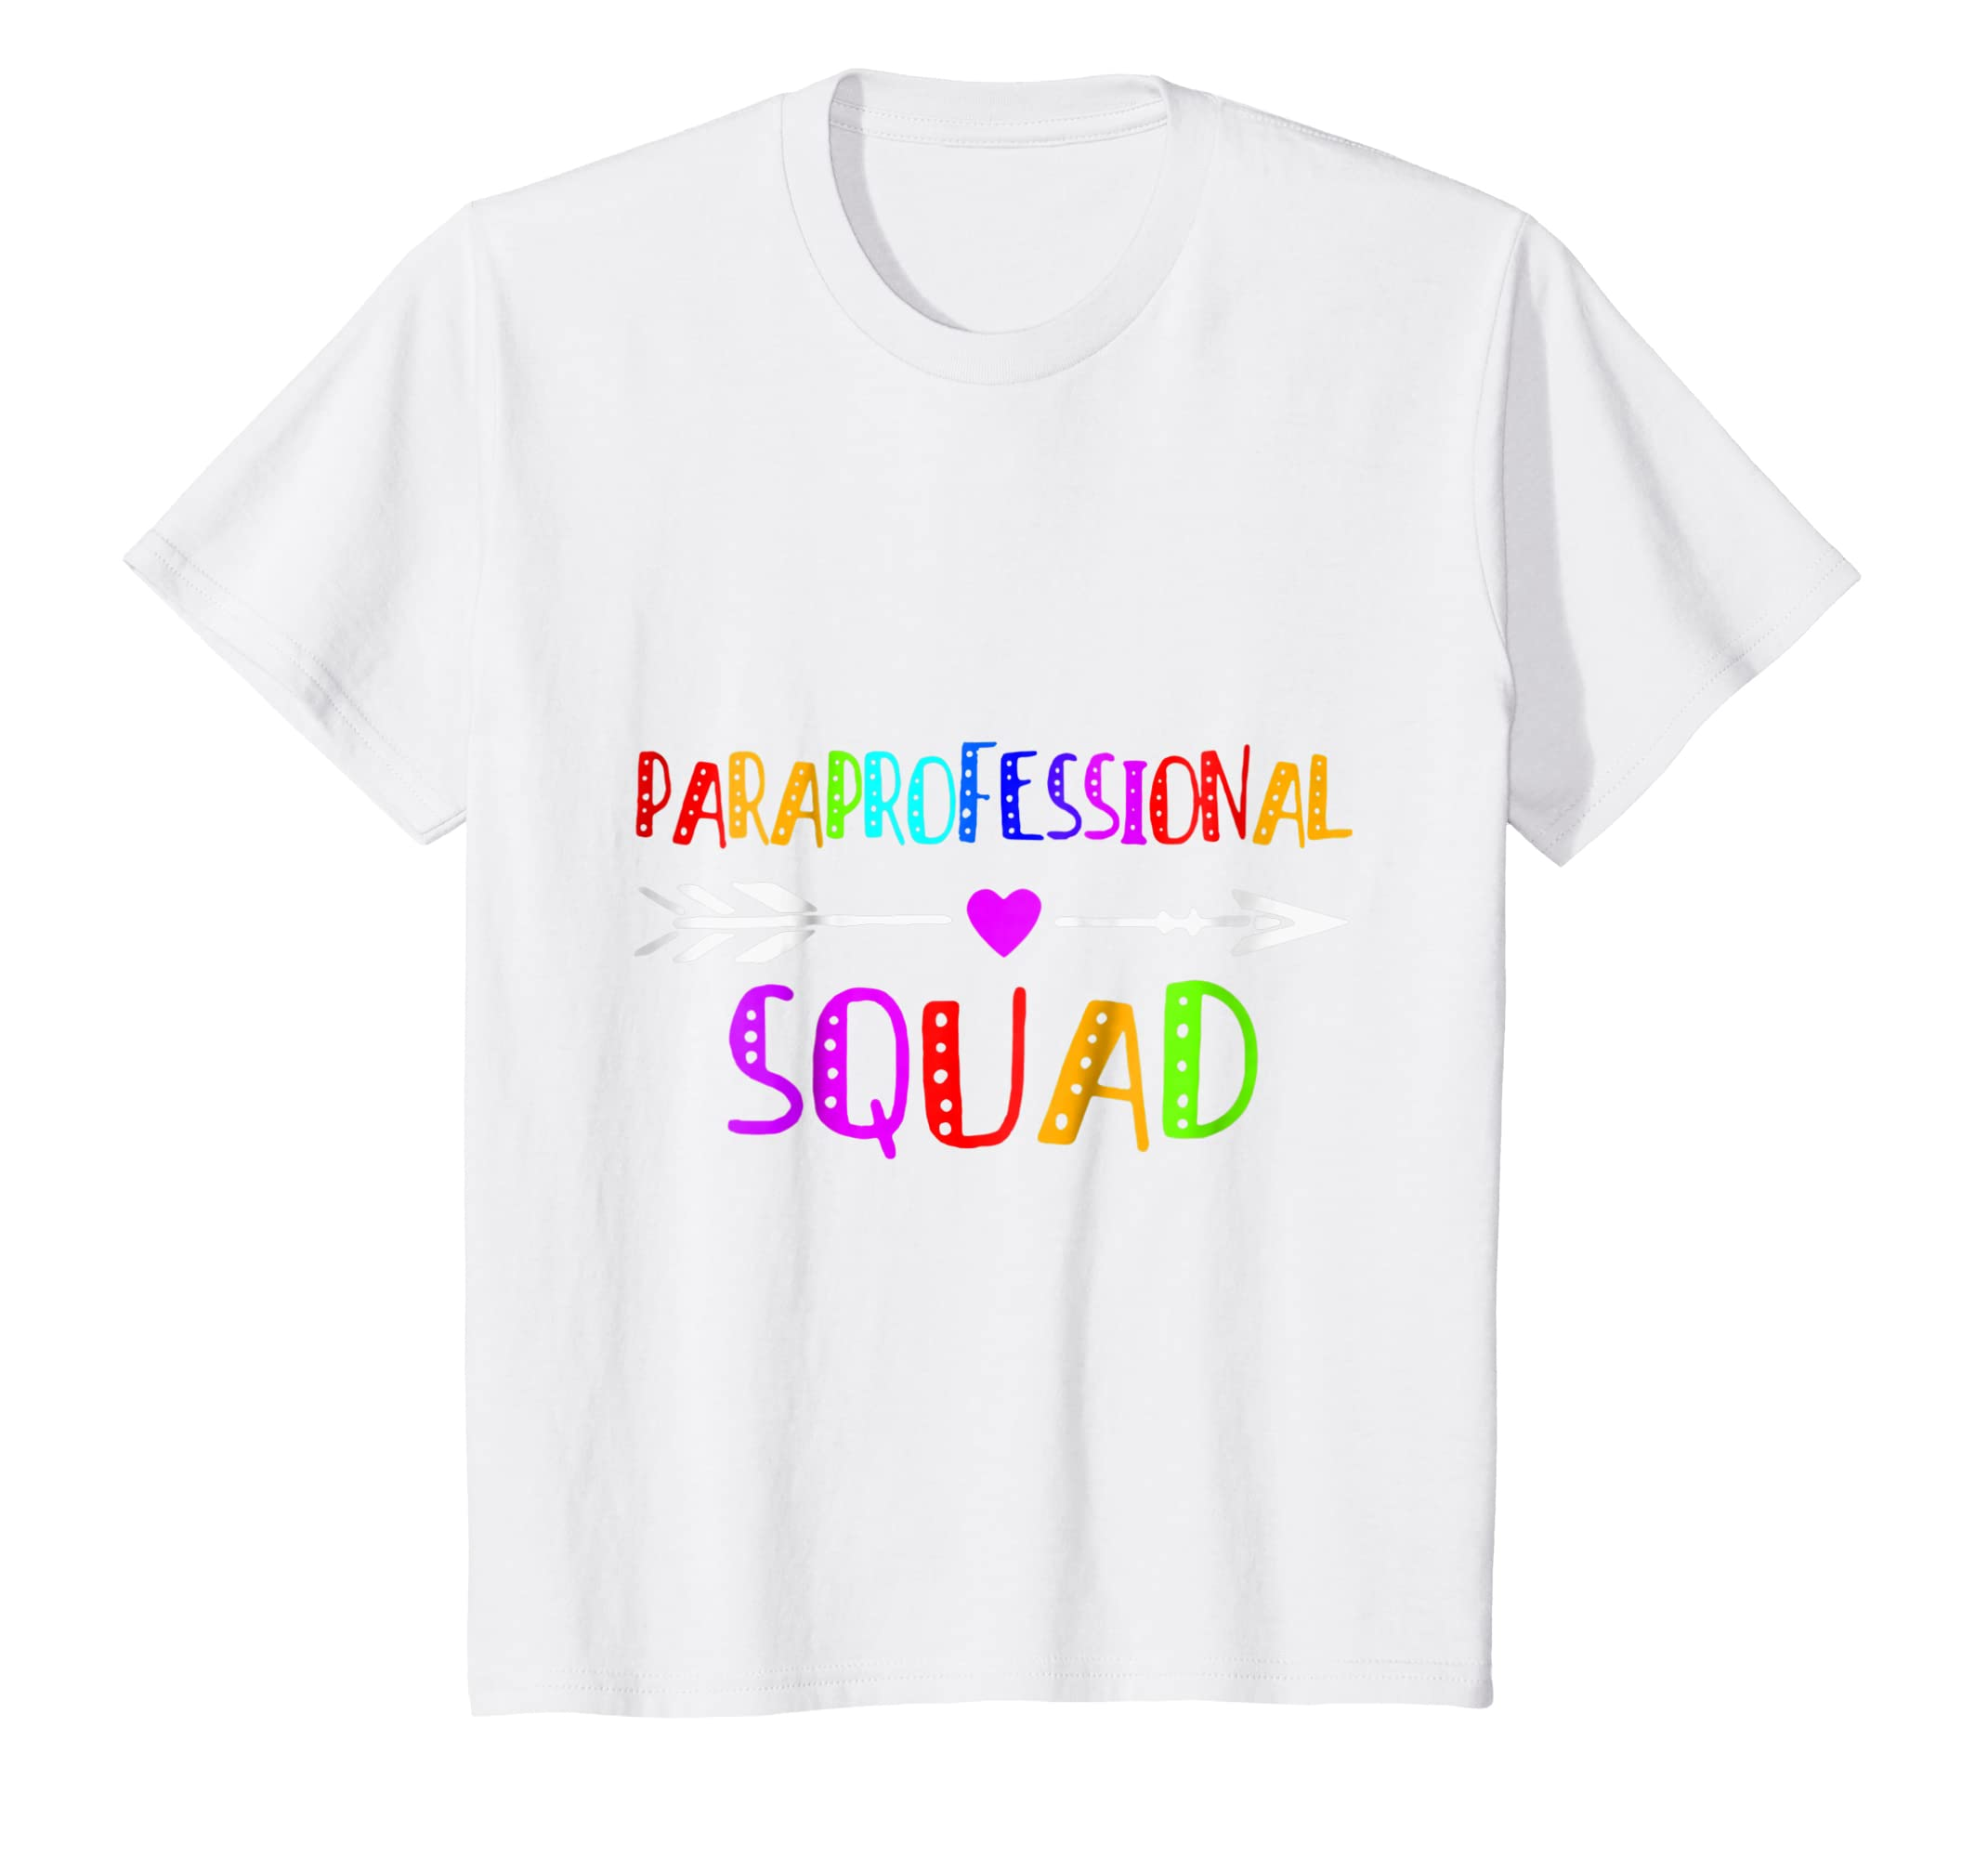 370c7d71 Amazon.com: Paraprofessional Squad Shirt Funny Paraeducator Gift: Clothing